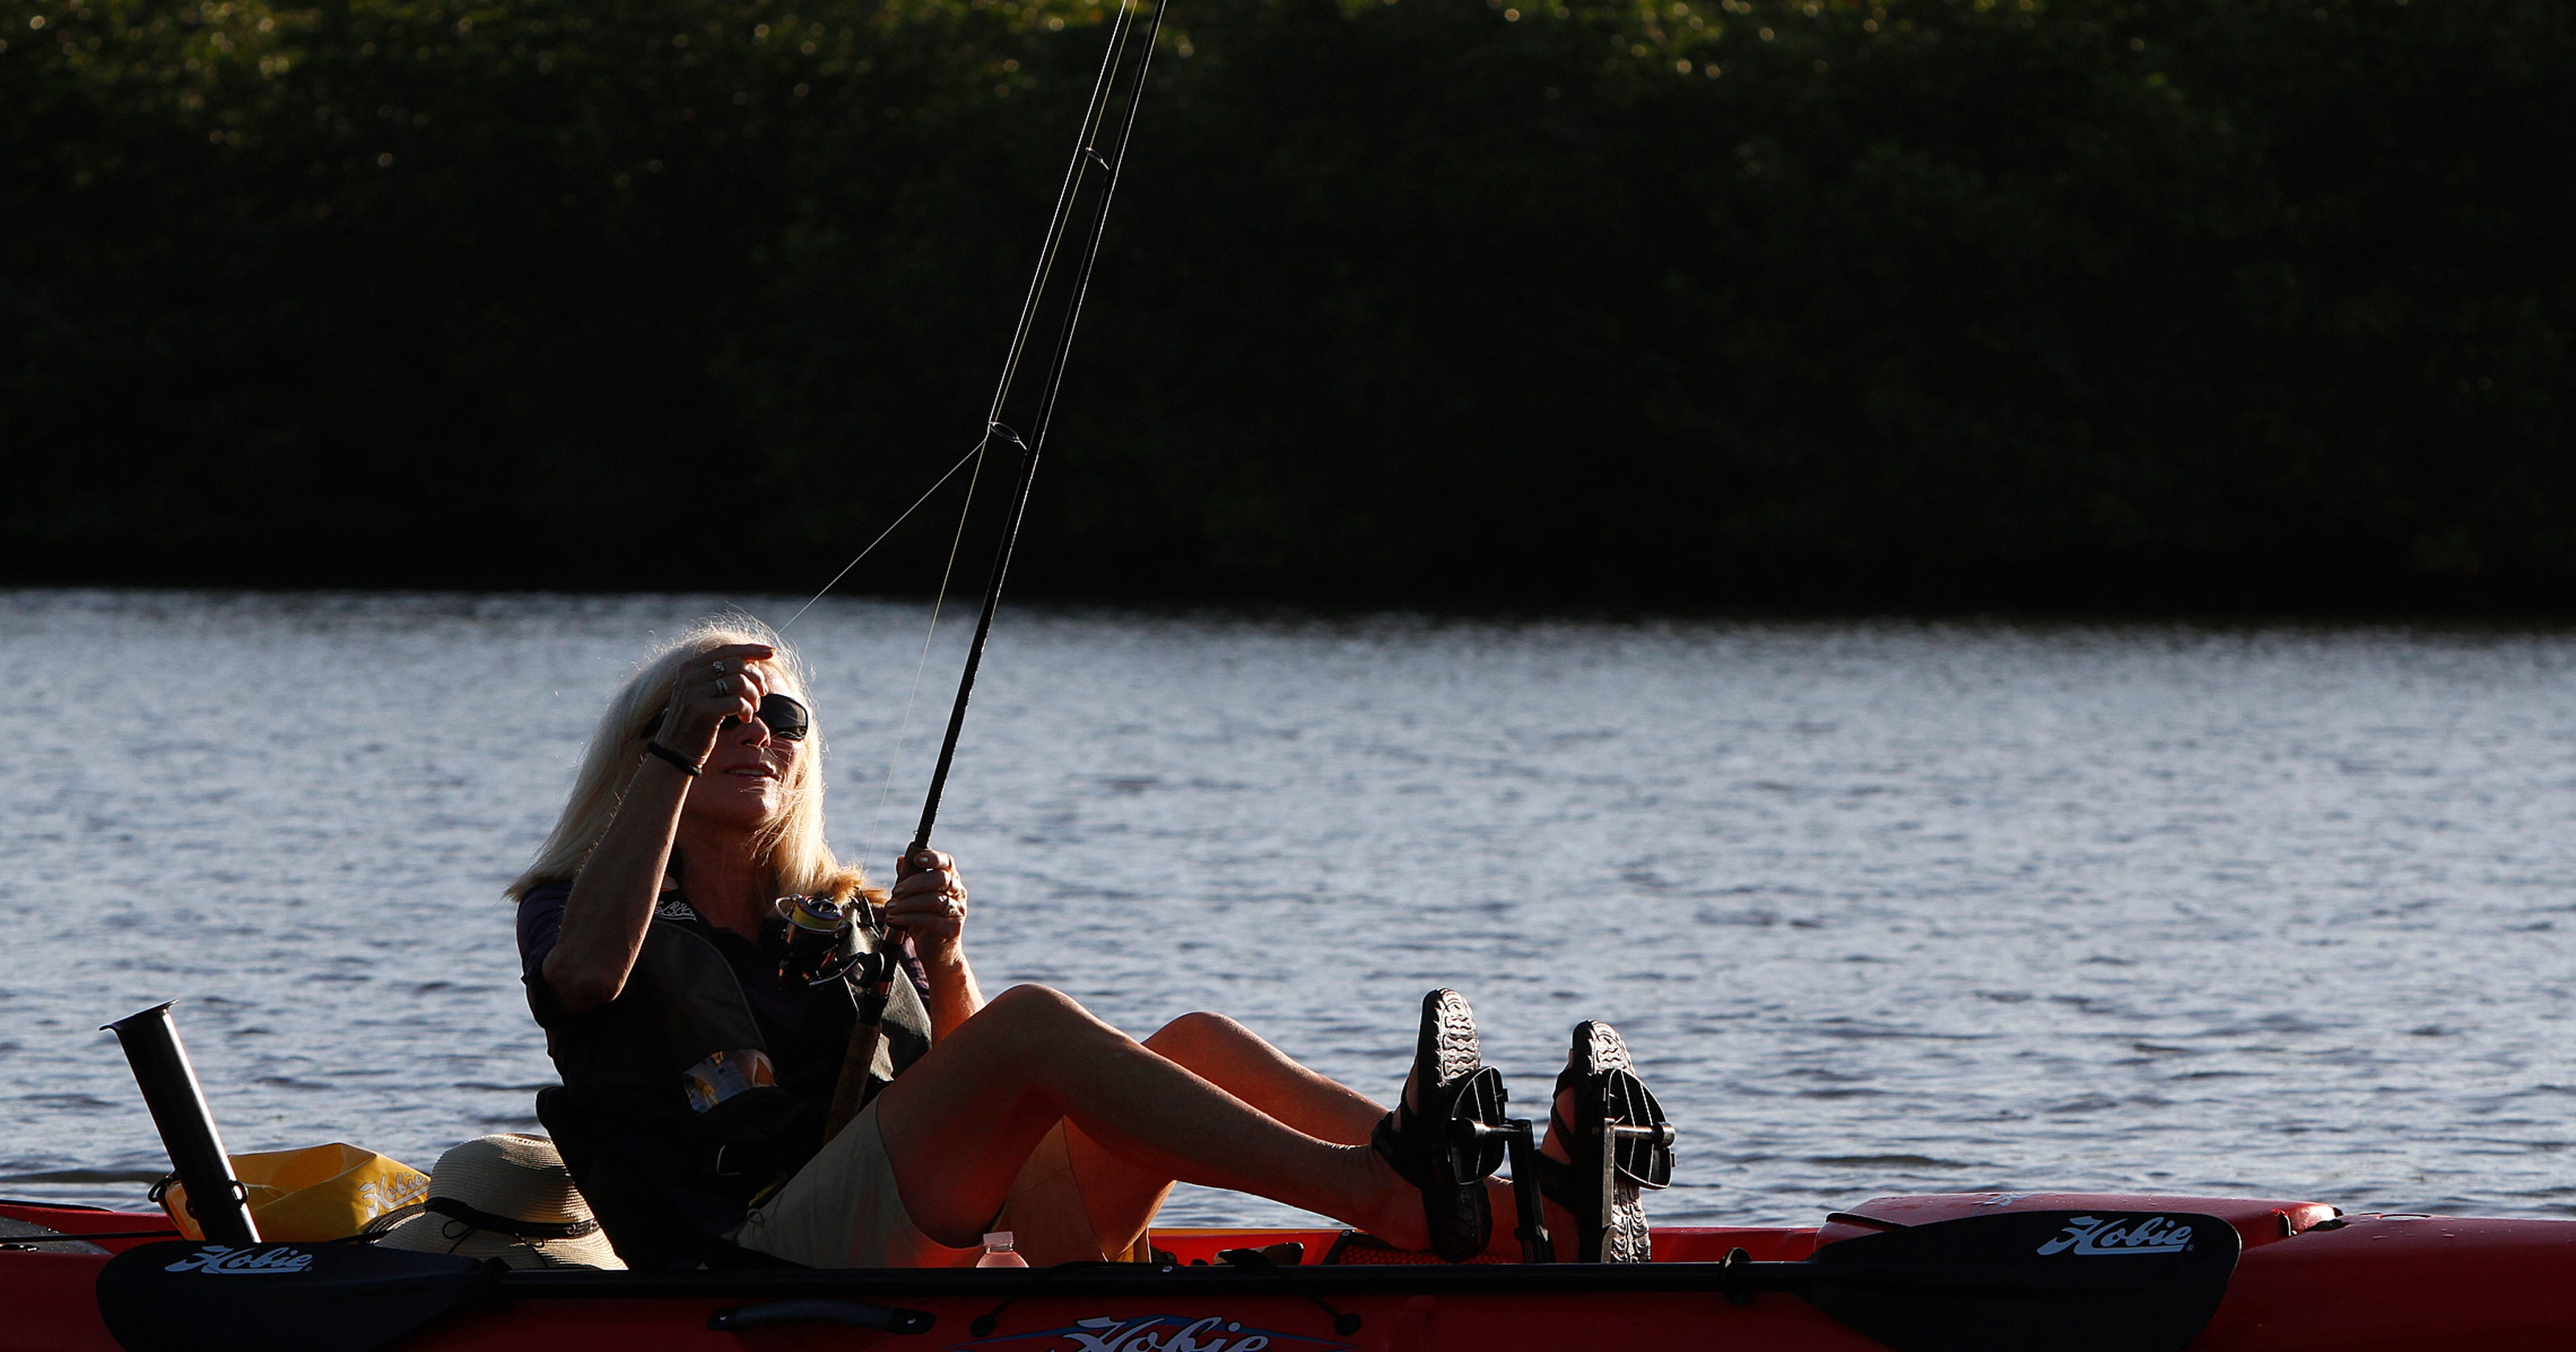 Kayak designed for angling could be just the ticket